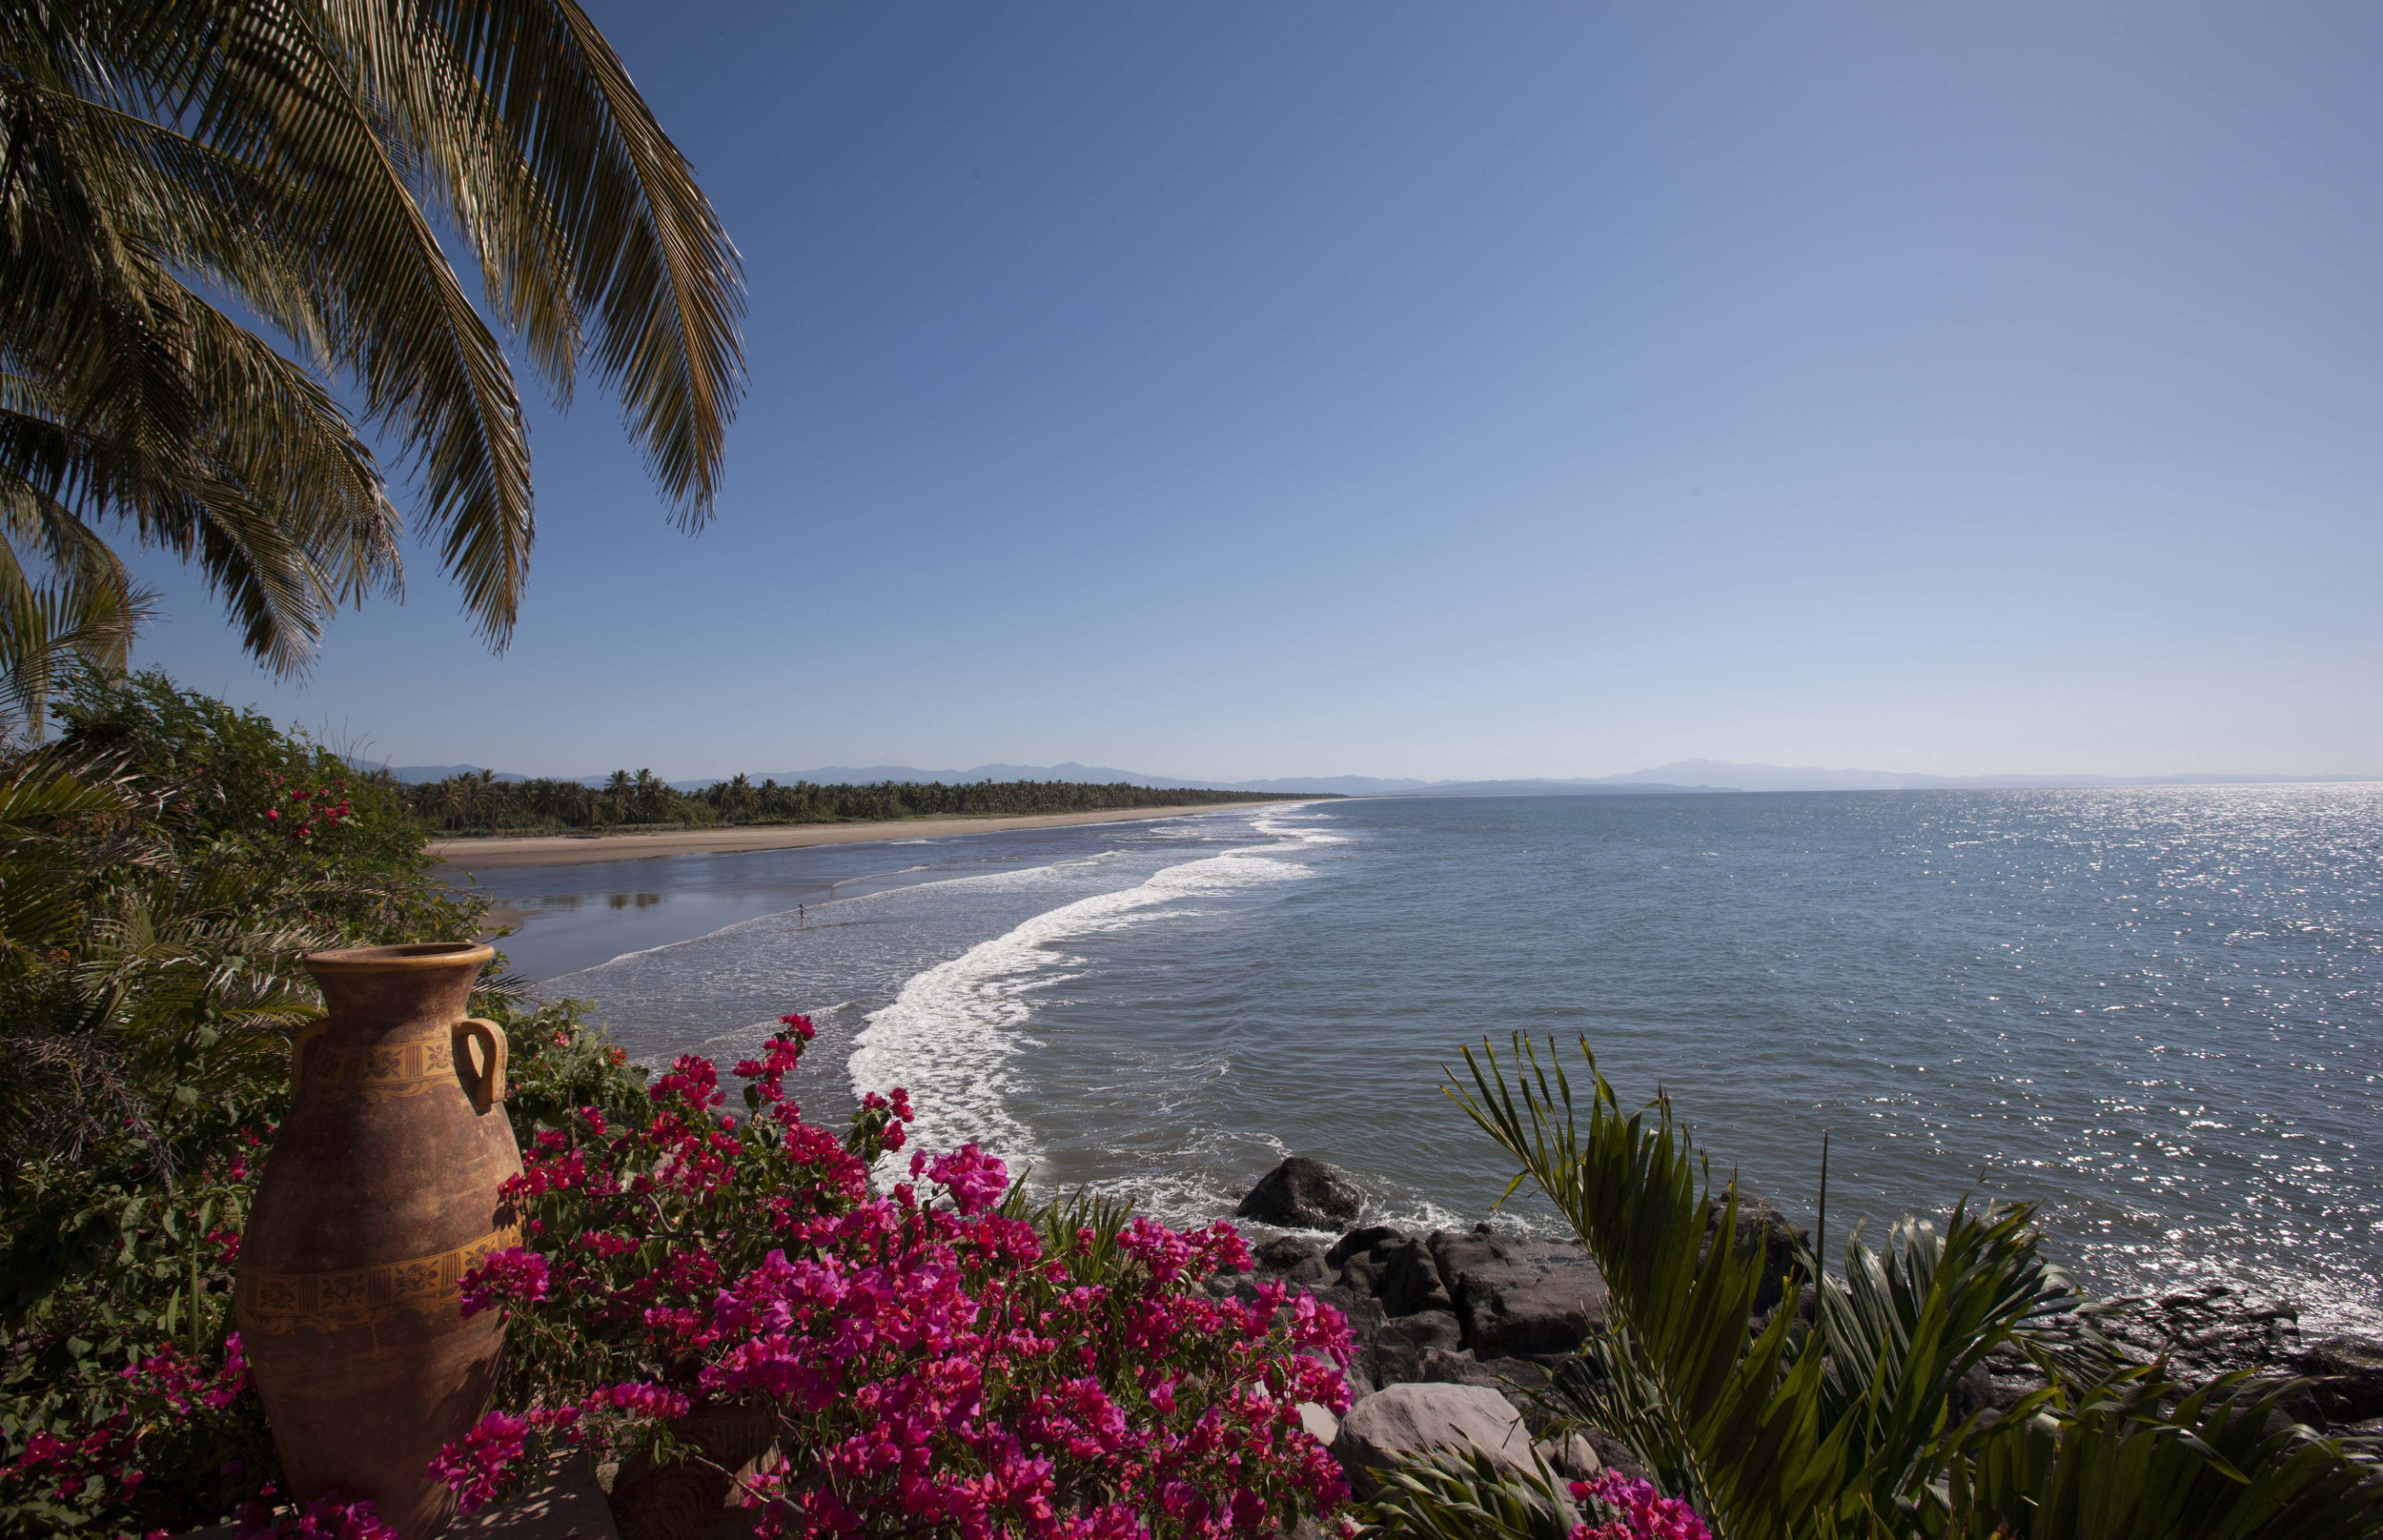 Low tide: looking south across turtle beach. Beyond the distant mountain range is puerto vallarta.